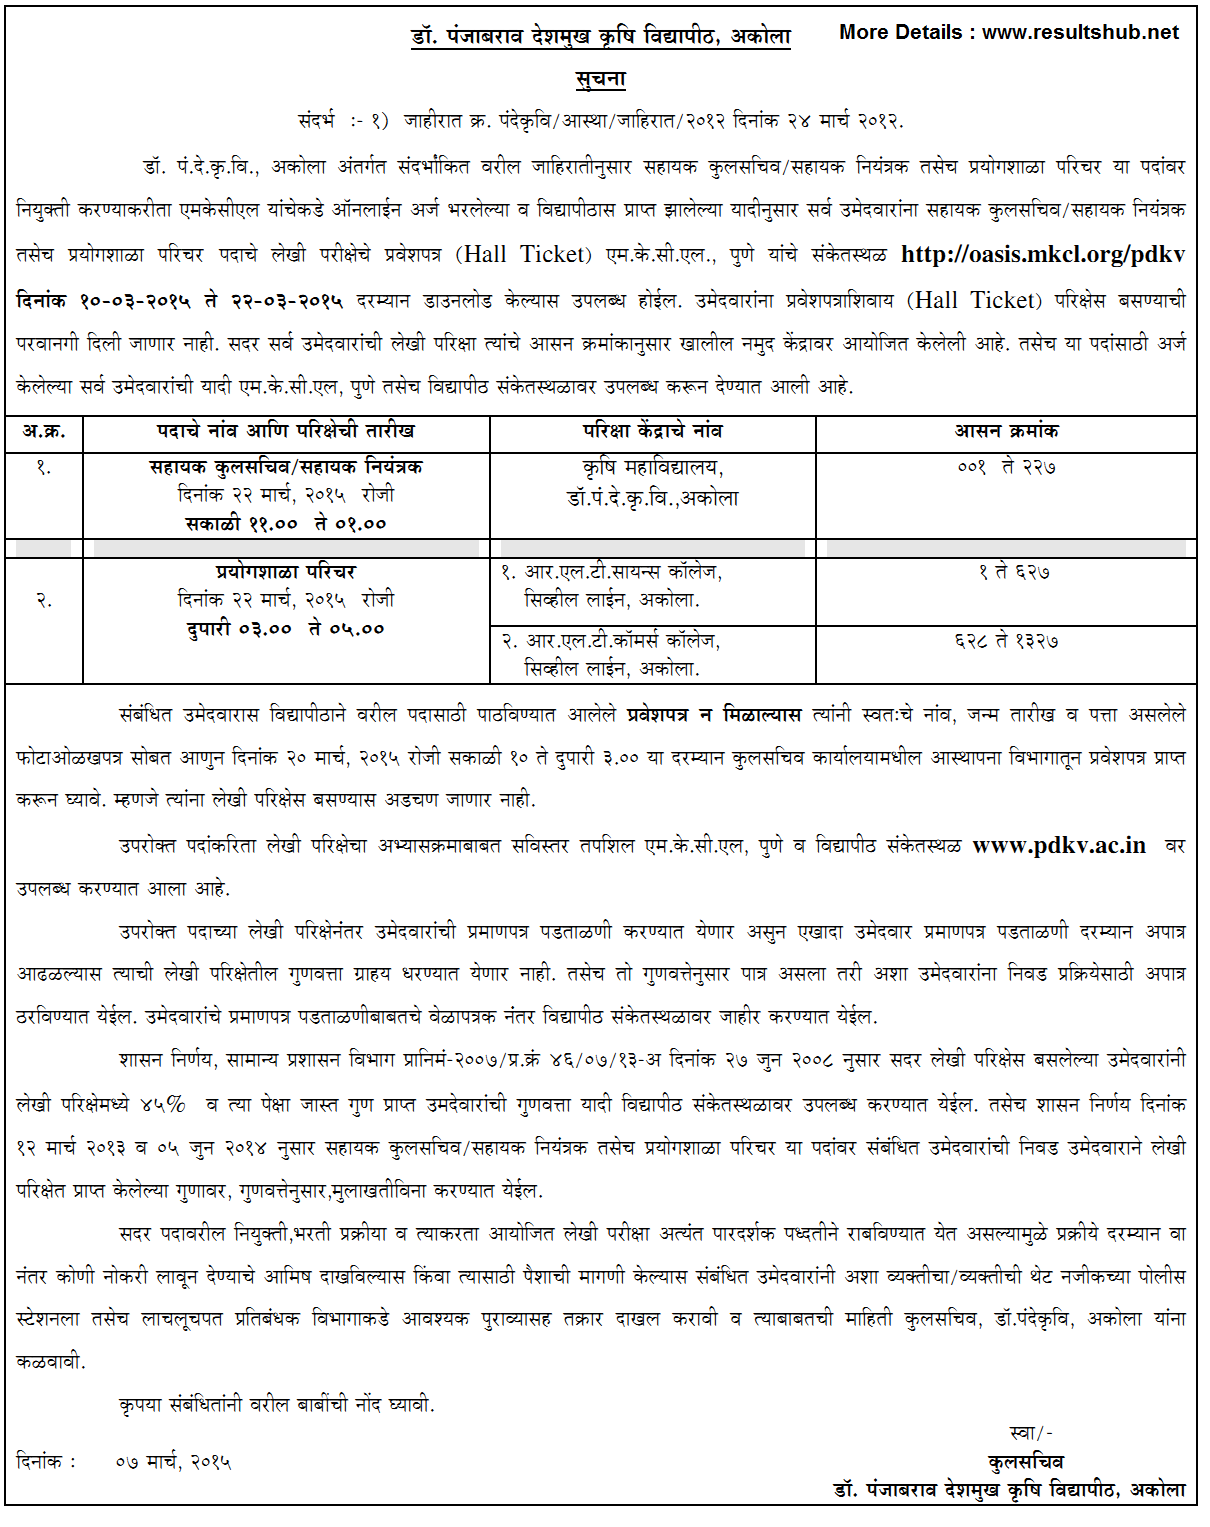 PDKV Akola Recruitment 2015 Hall Ticket Admit Card